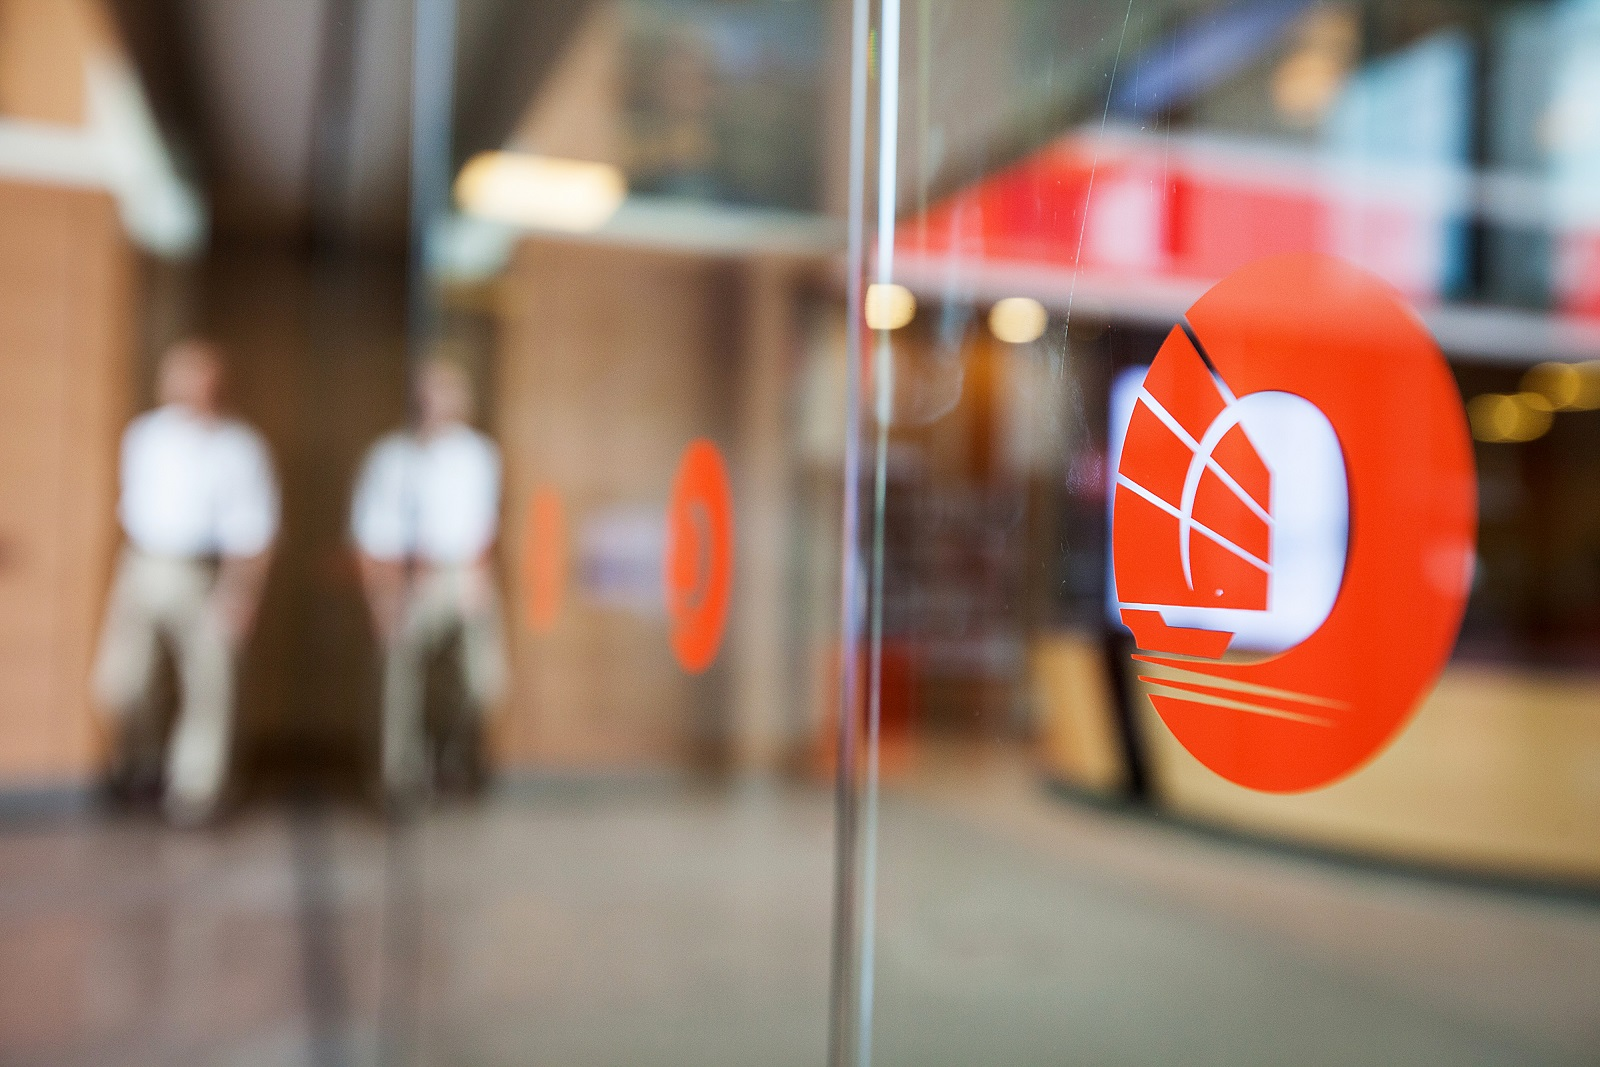 The Oversea-Chinese Banking Corp. logo is displayed on a window at the company's branch in OCBC Center in Singapore, on Friday, Aug. 22, 2014. Oversea-Chinese Banking Corp. is in talks to sell its stake in United Engineers Ltd., a Singapore property and construction company, to Thai billionaire Charoen Sirivadhanabhakdi, people familiar with the matter said. Selling the stake would help OCBC bolster capital after its $5 billion takeover of Hong Kong's Wing Hang Bank Ltd. this year. Photographer: Nicky Loh/Bloomberg